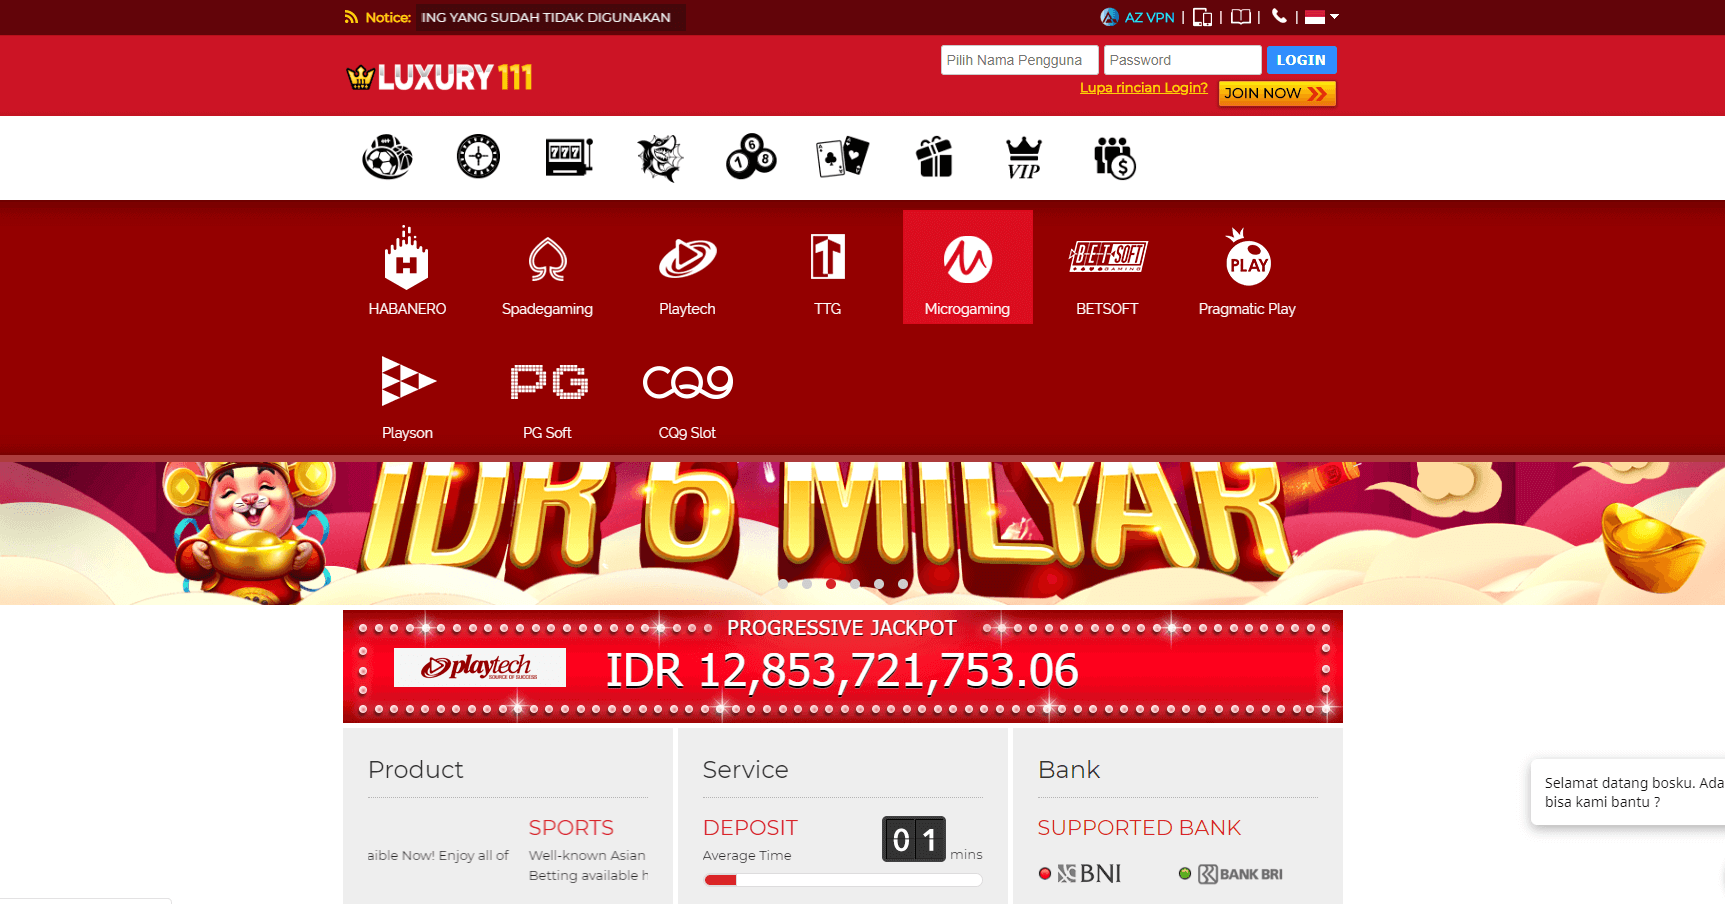 Link alternatif luxury111